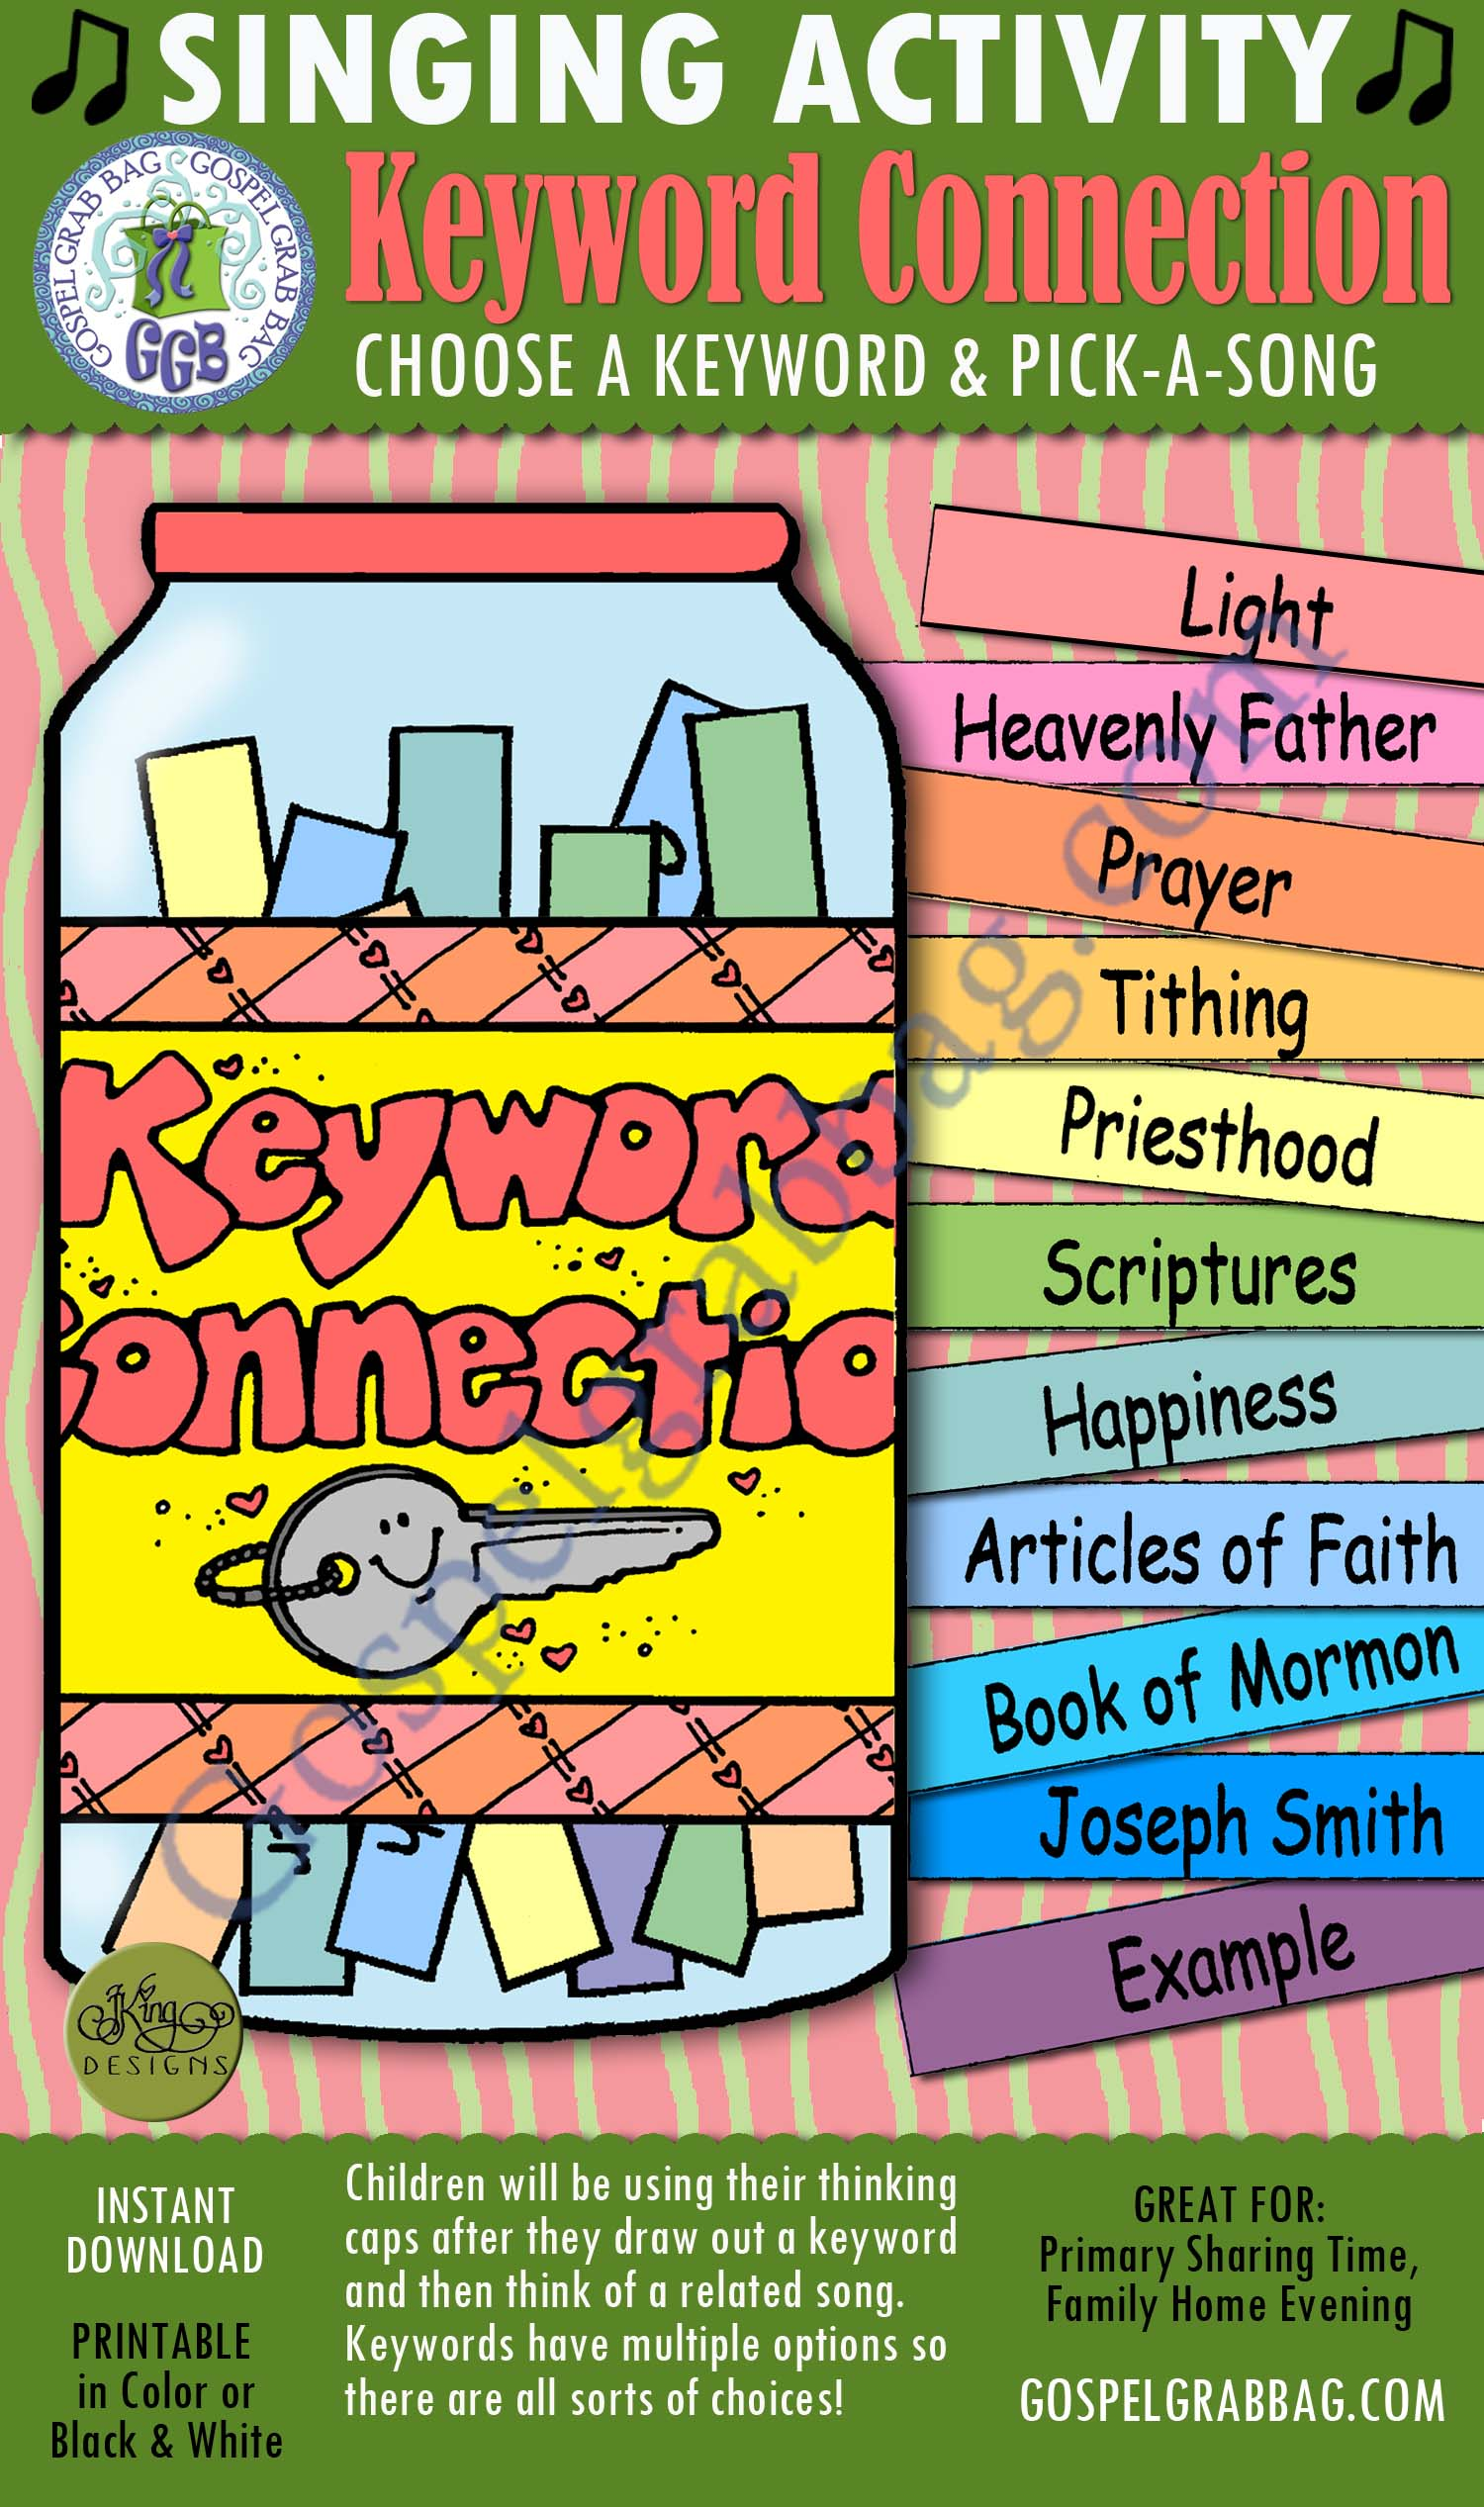 $3.00 KEYWORD CONNECTION pick-a-song to match keyword: Primary Music Singing Time Activities to Motivate Children to Sing, download from GospelGrabBag.com